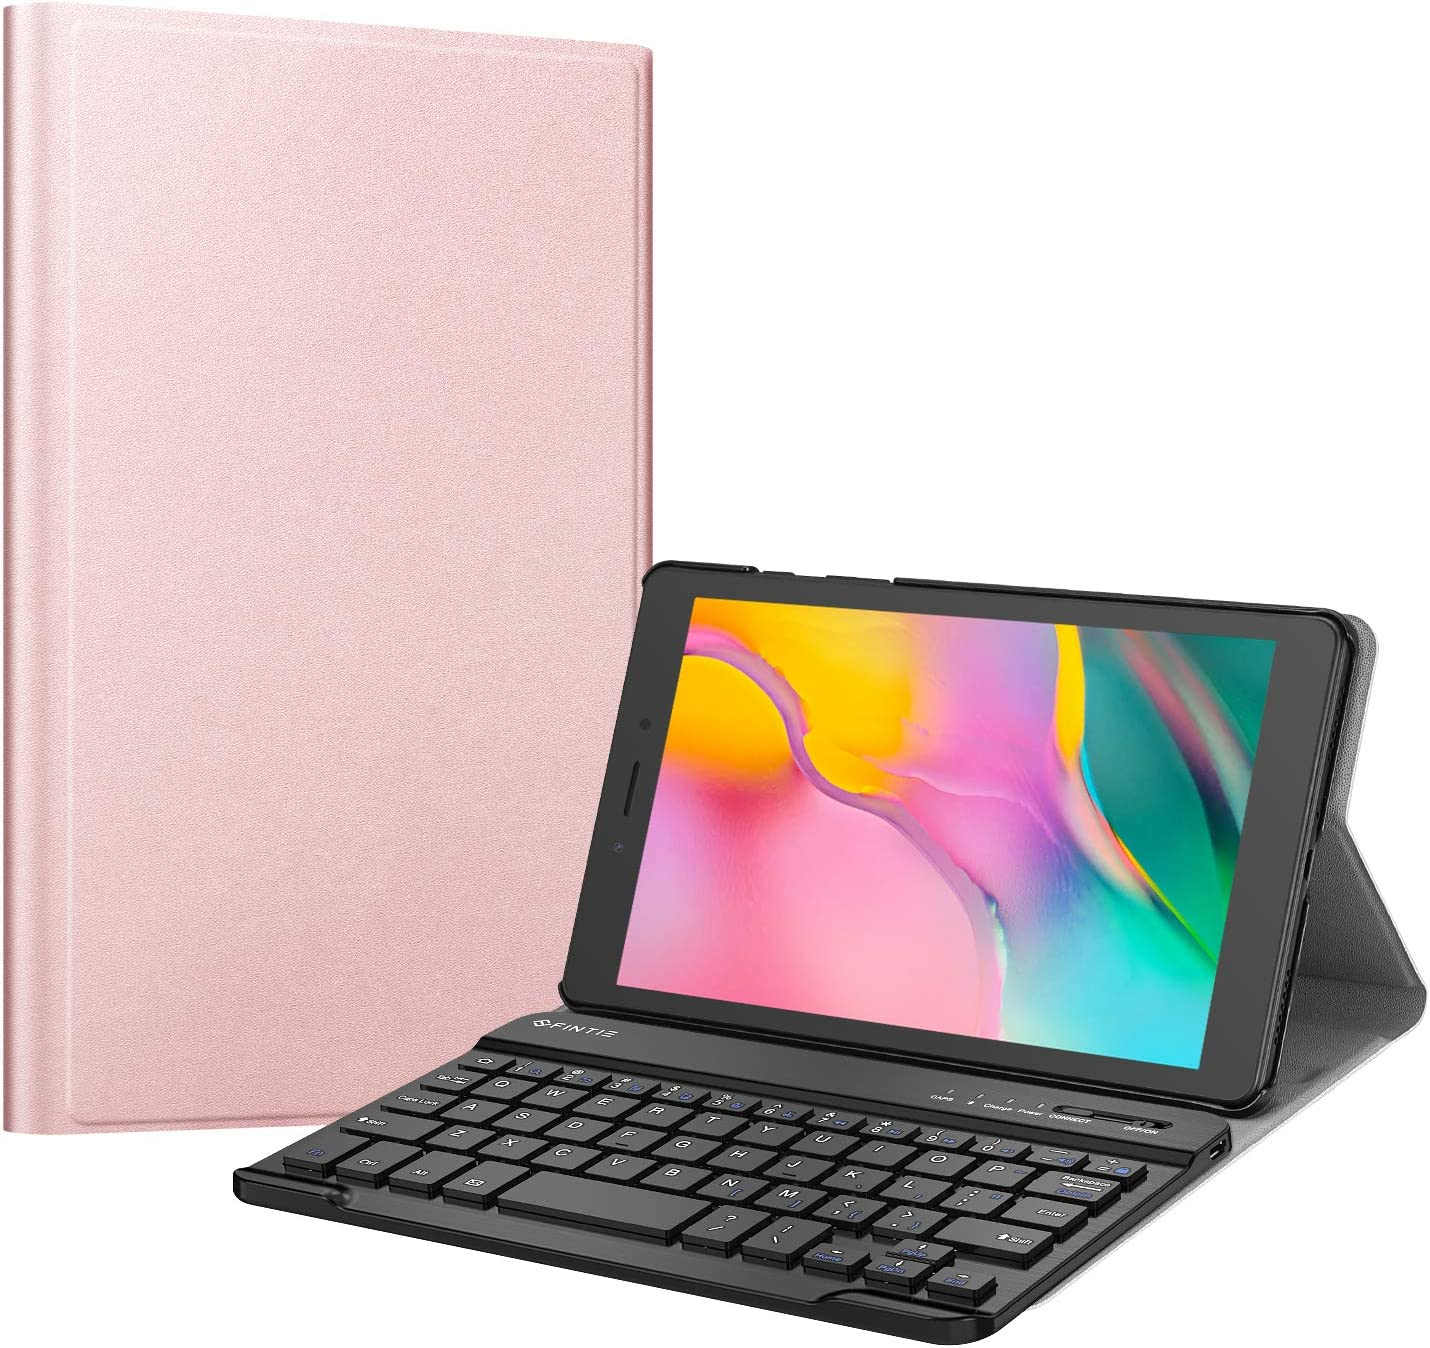 Fintie Keyboard Case for Samsung Galaxy Tab A 8.0 2019 Without S Pen Model (SM-T290 Wi-Fi, SM-T295 LTE), Slim Shell Lightweight Stand Cover with Detachable Wireless Bluetooth Keyboard, Rose Gold